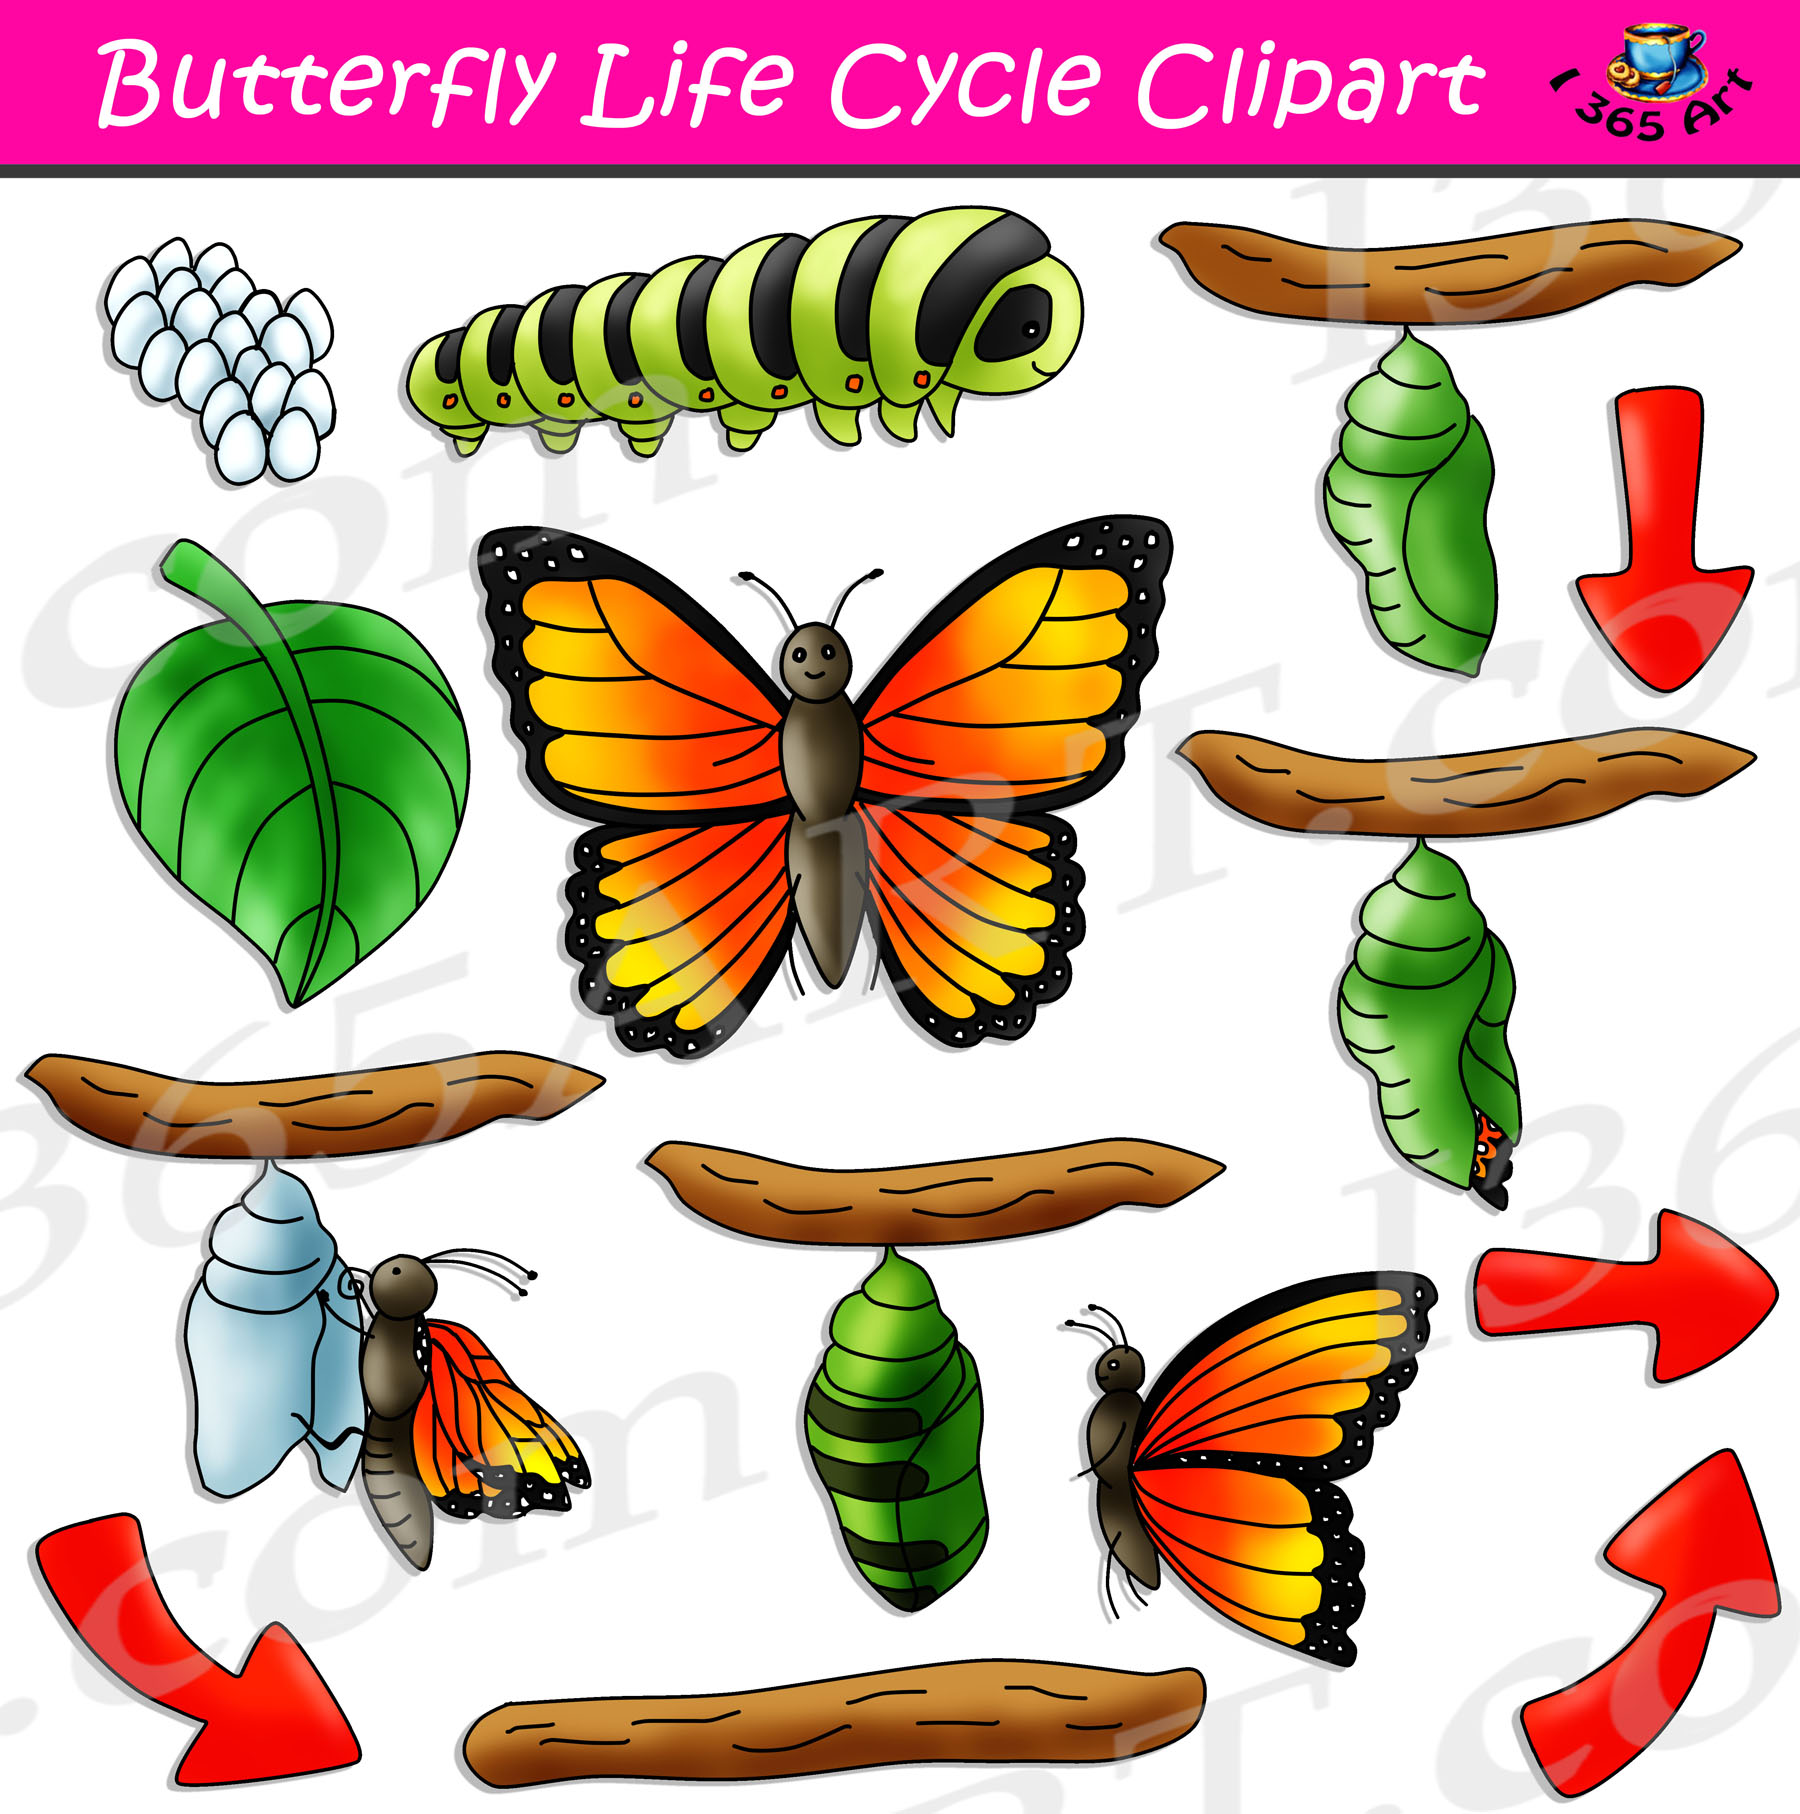 Cycle clipart life cycle. Butterfly bundle